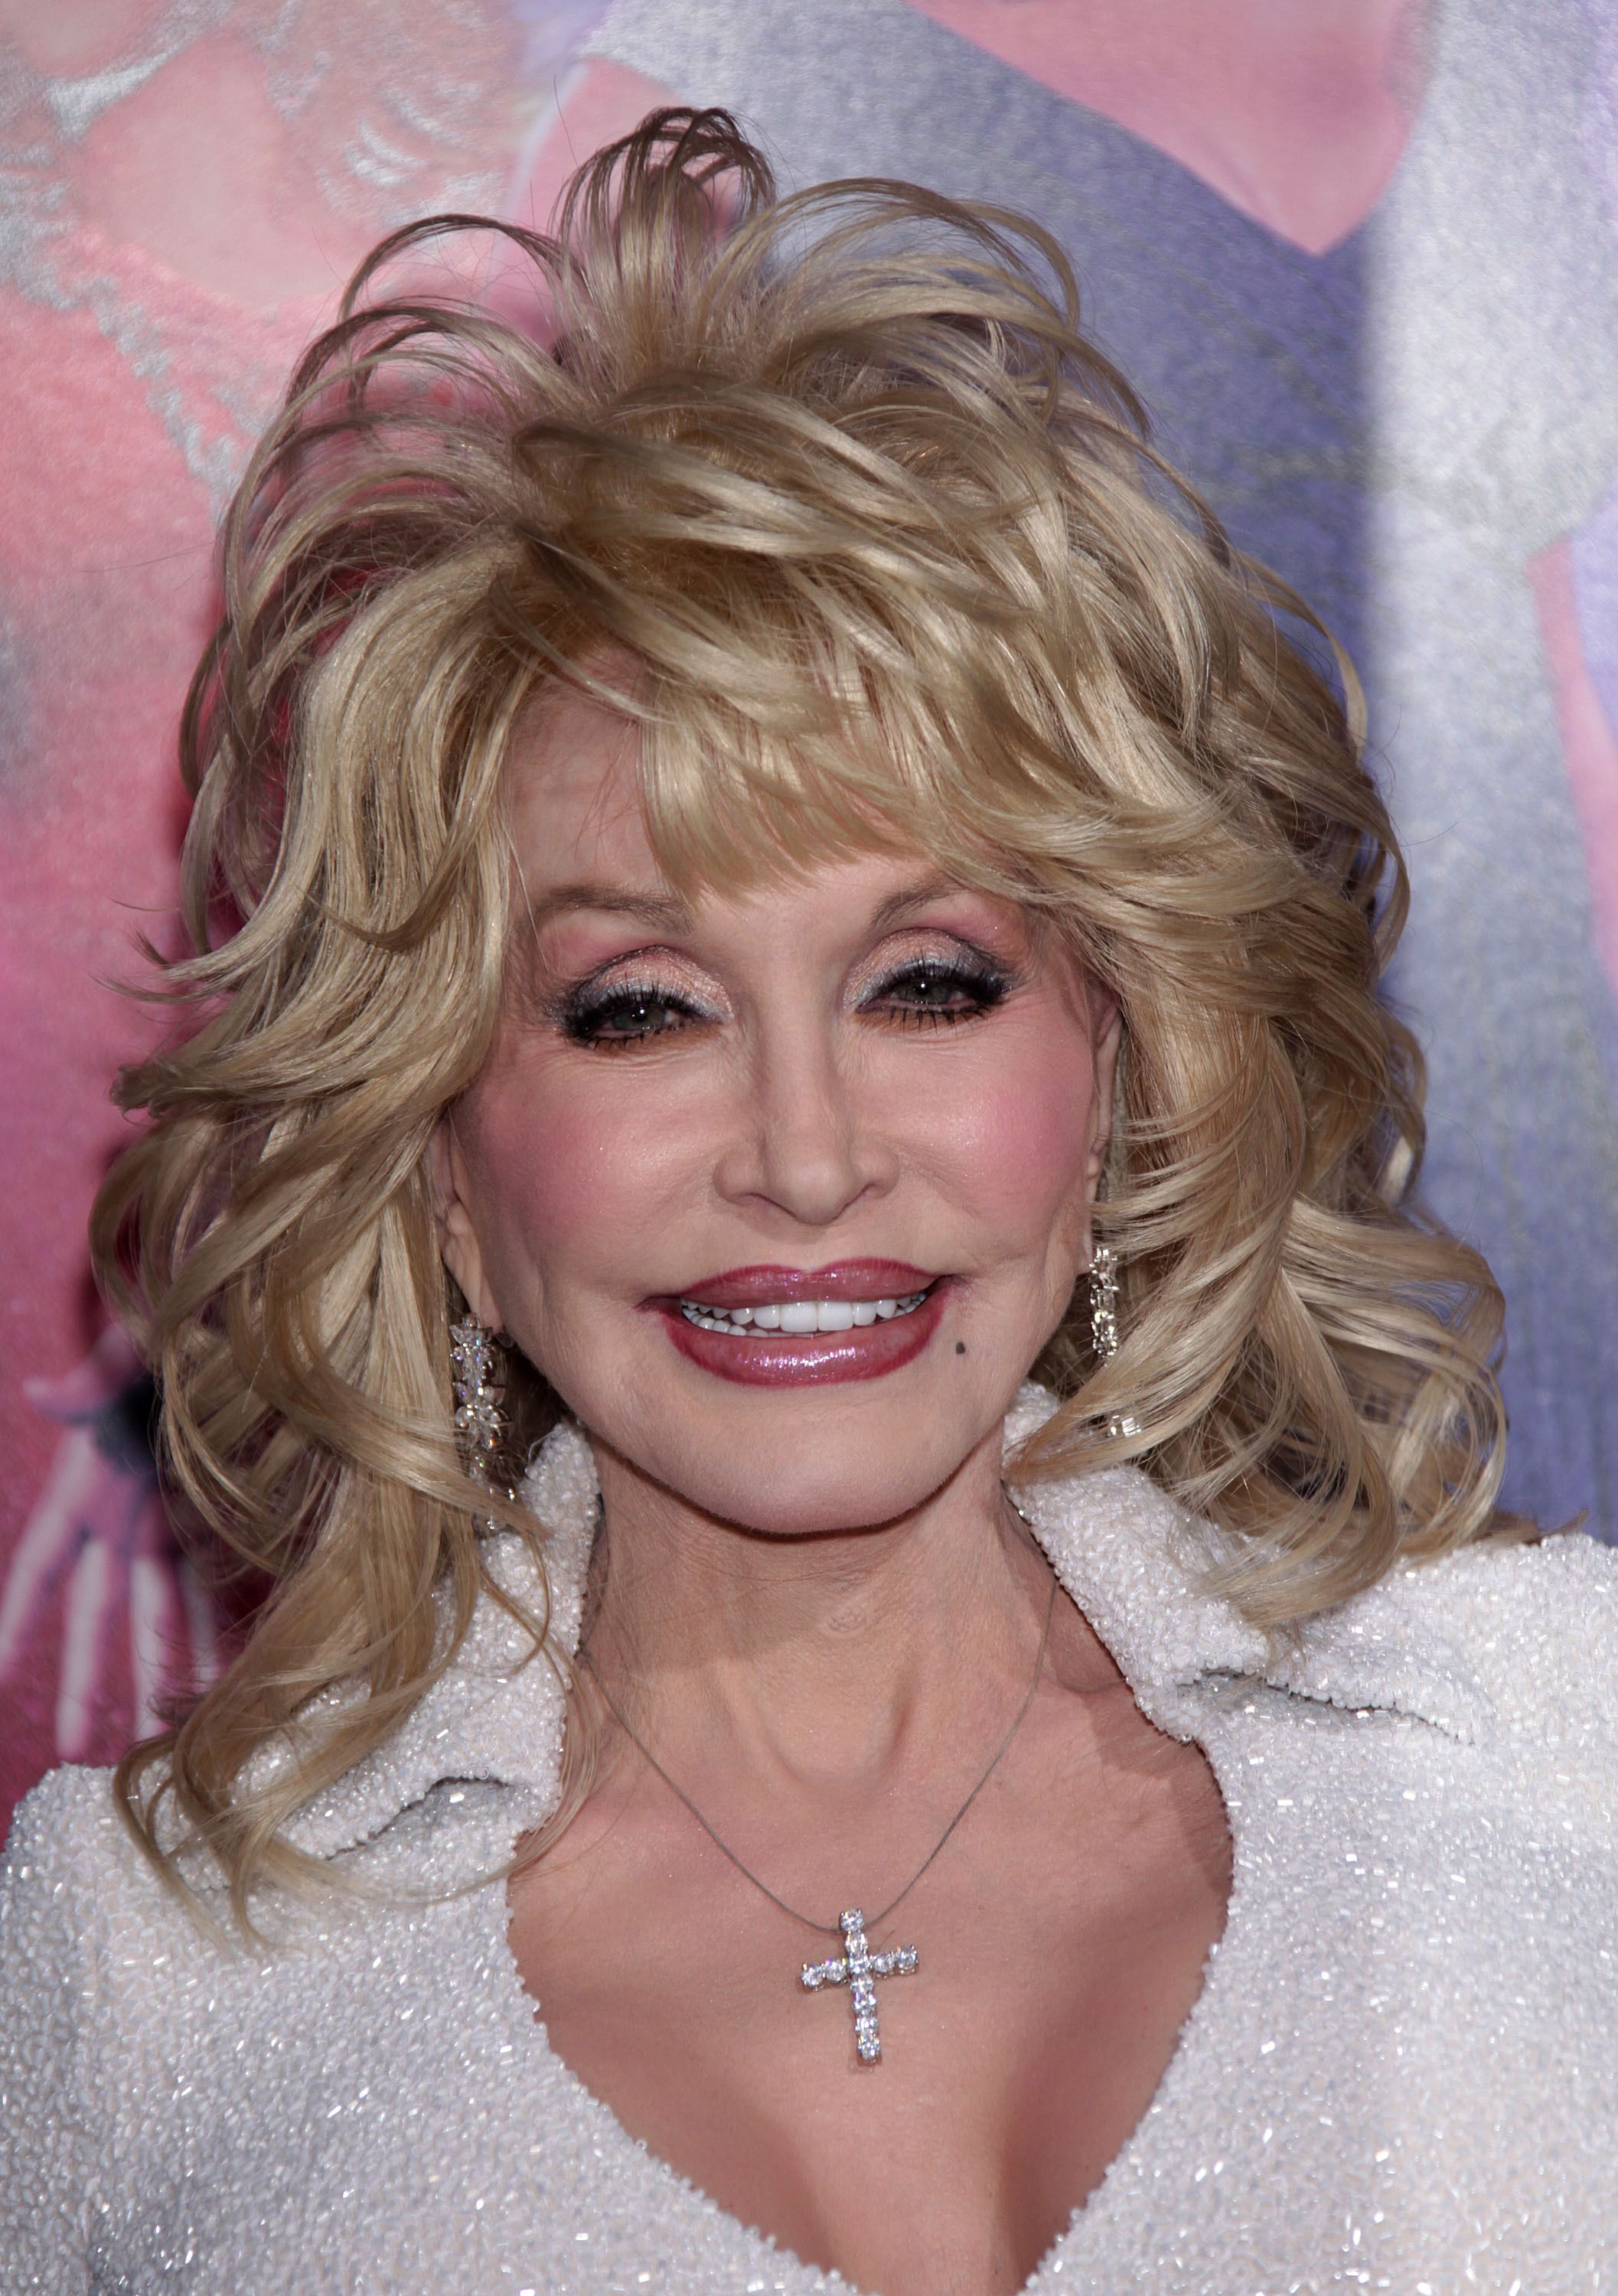 12. I Will Always Love You by Dolly Parton (1973)